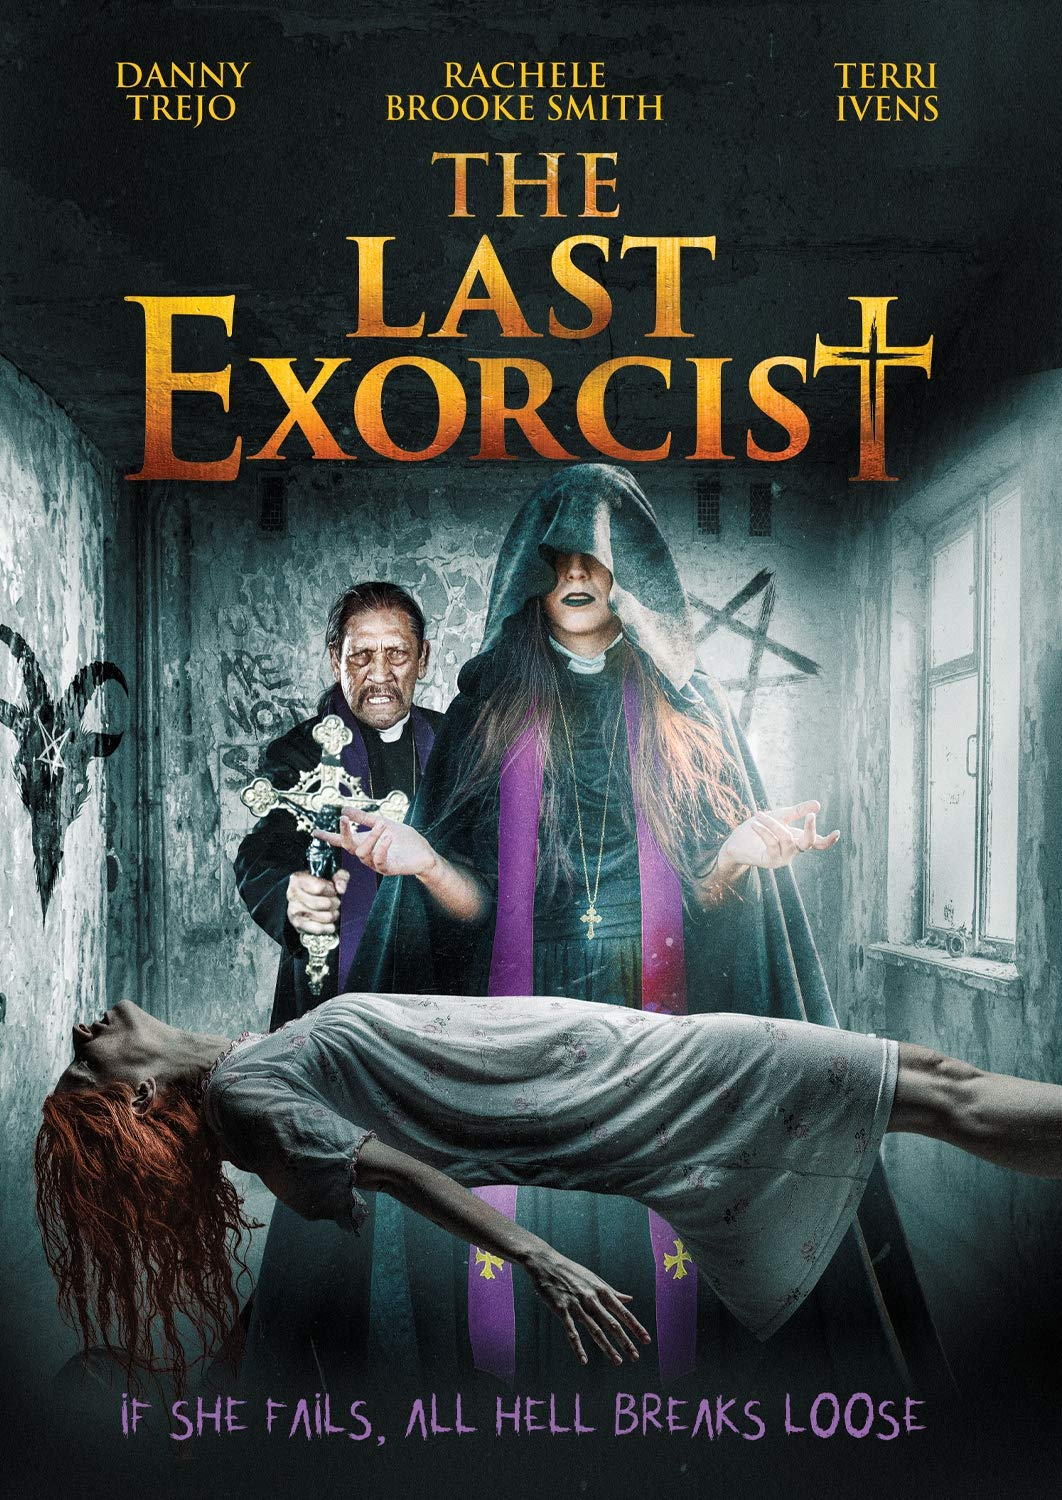 The Last Exorcist hd on soap2day